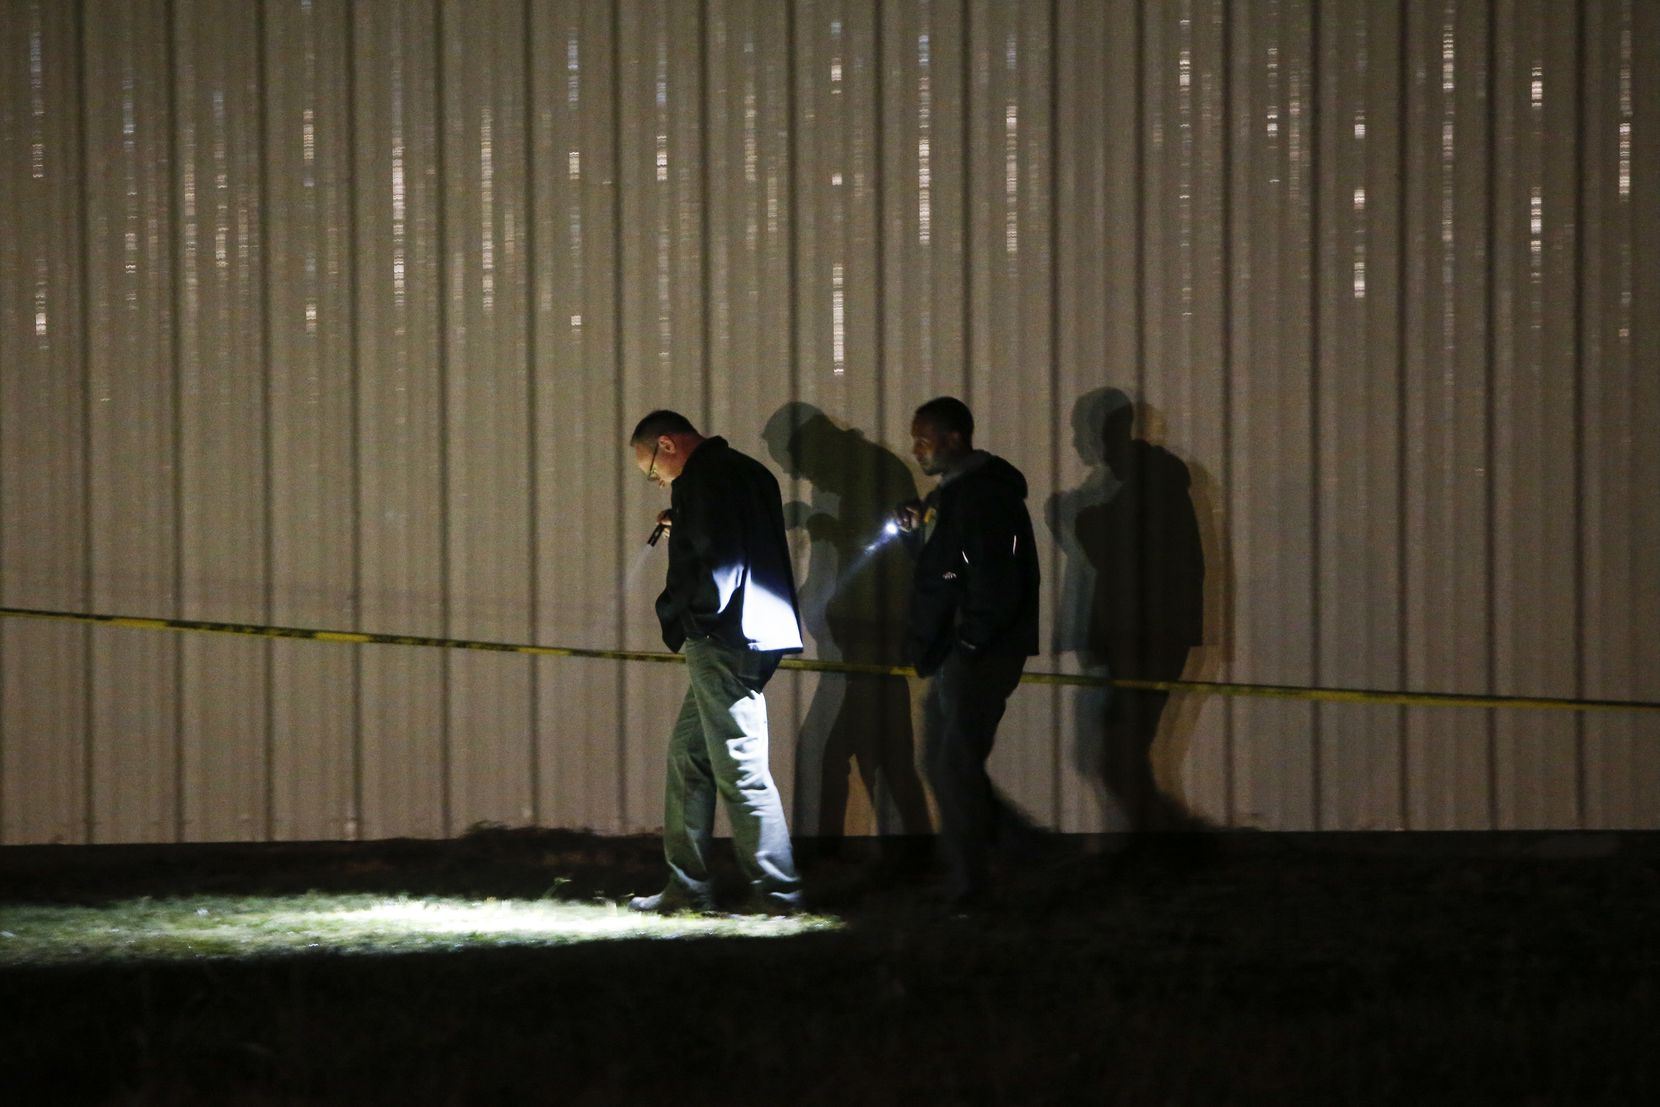 Investigators worked the crime scene after a shooting at the Party Venue on Highway 380 in Greenville.